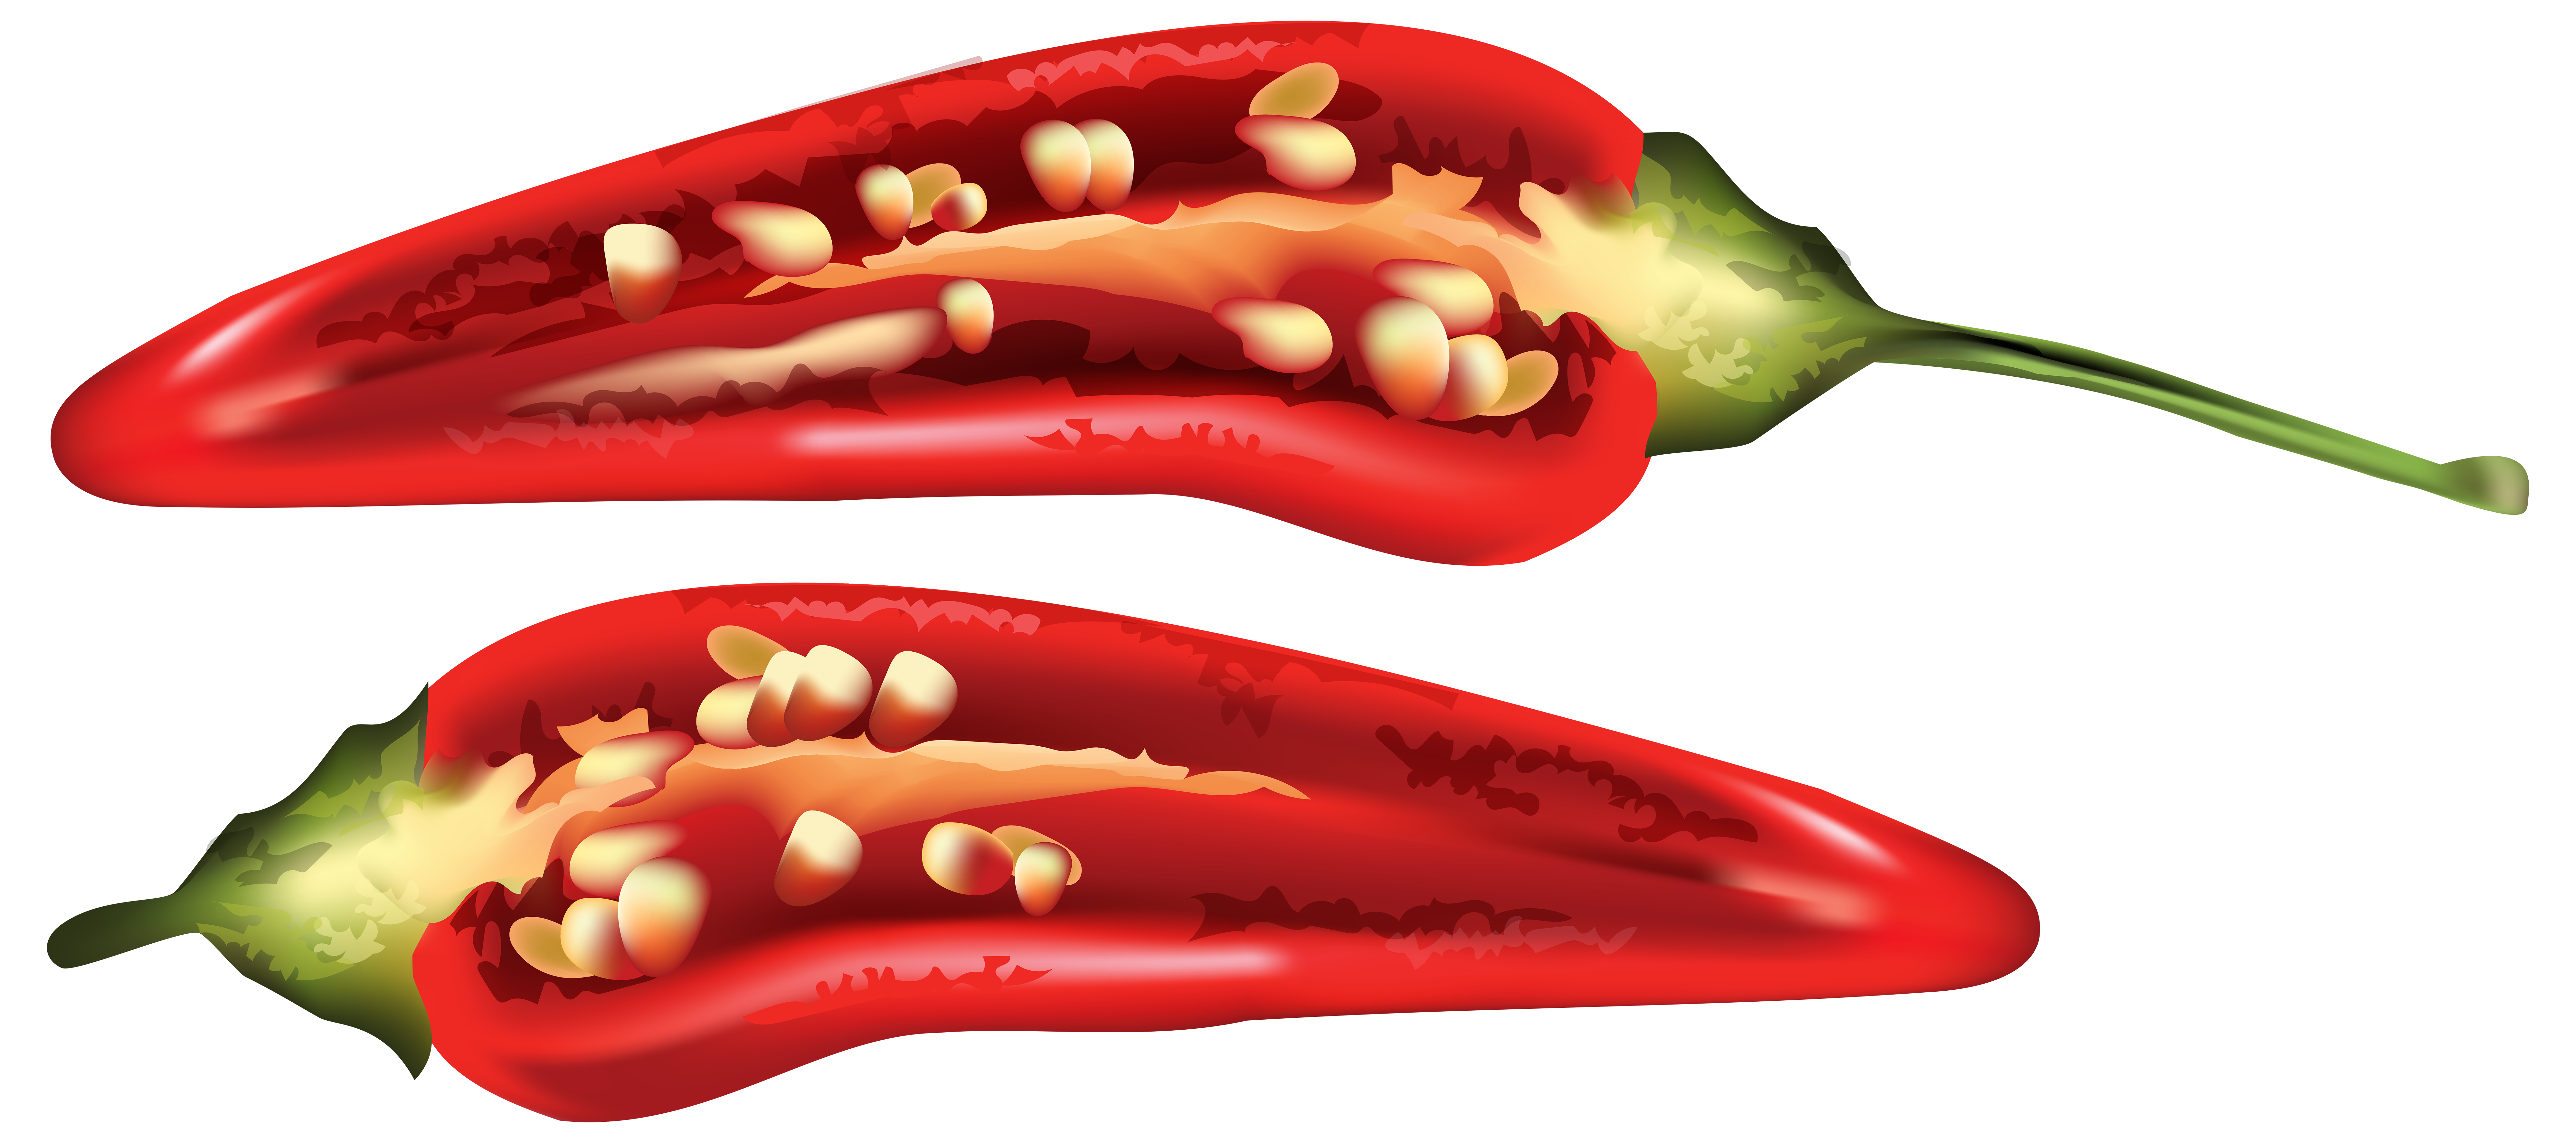 Half Red Chili Pepper Png Clip Art Image Gallery Yopriceville Stuffed Peppers Red Chili Red Chili Peppers